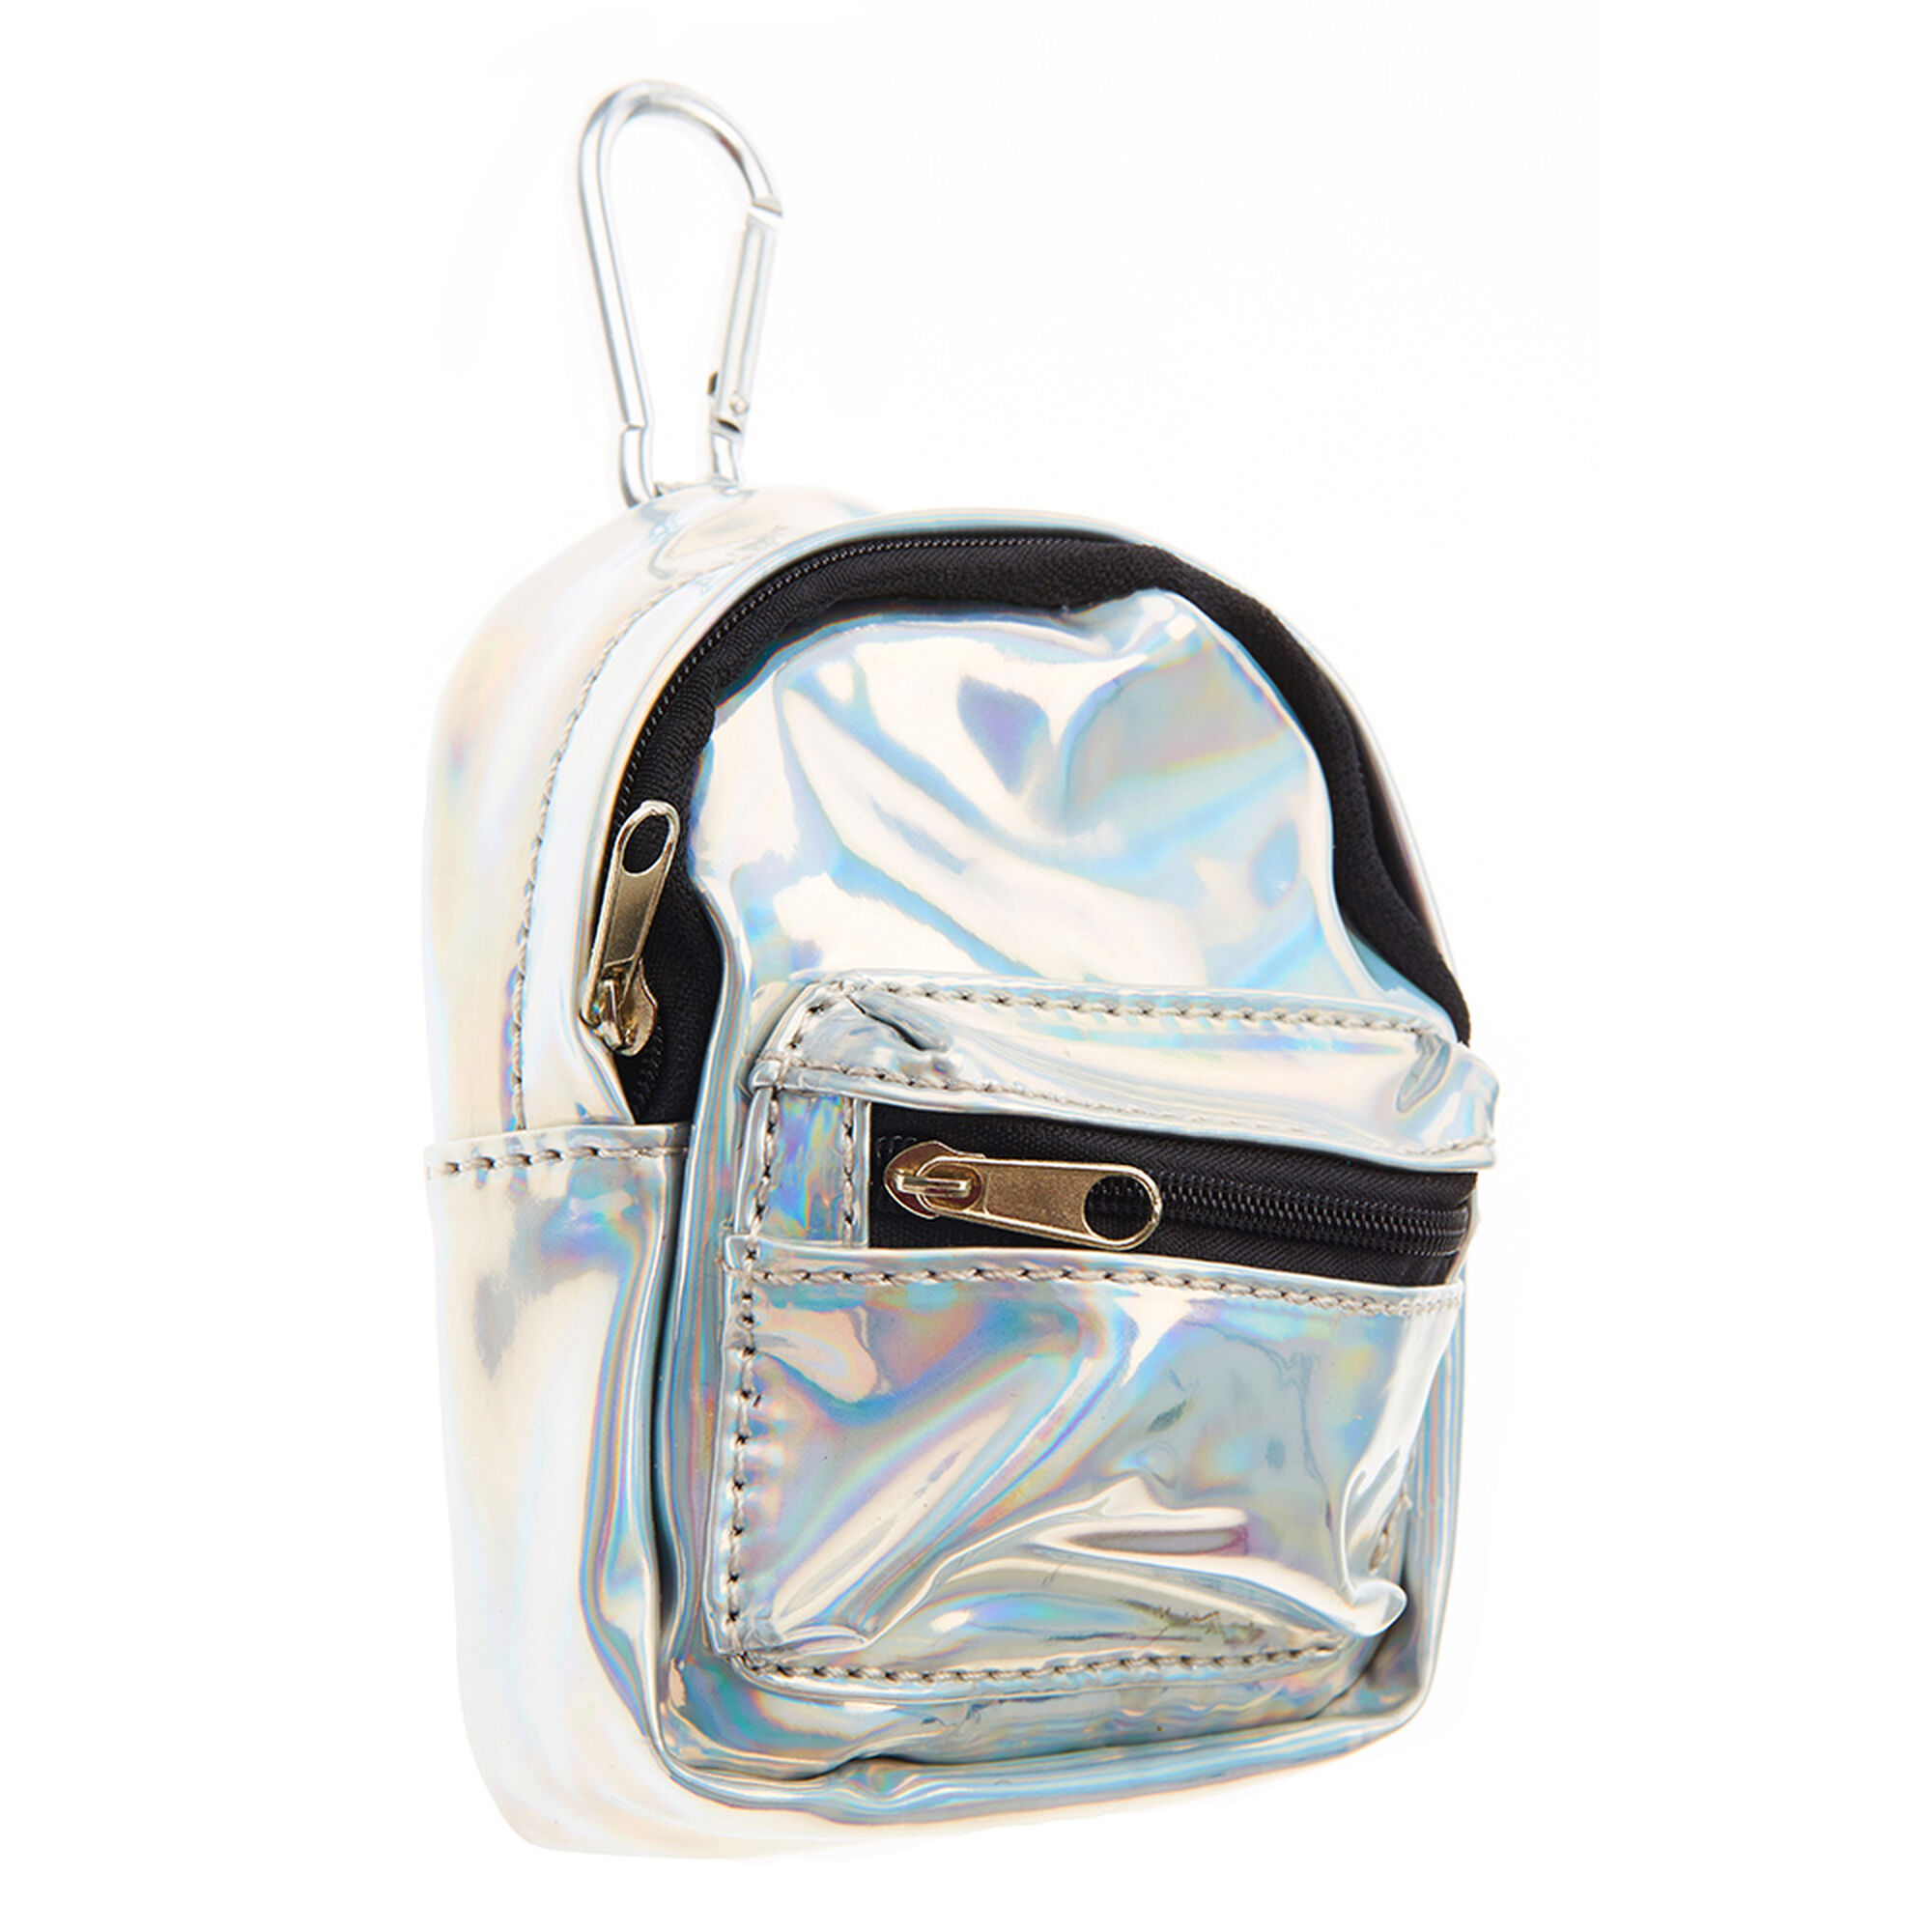 silver holographic mini backpack purse keyring claire 39 s. Black Bedroom Furniture Sets. Home Design Ideas